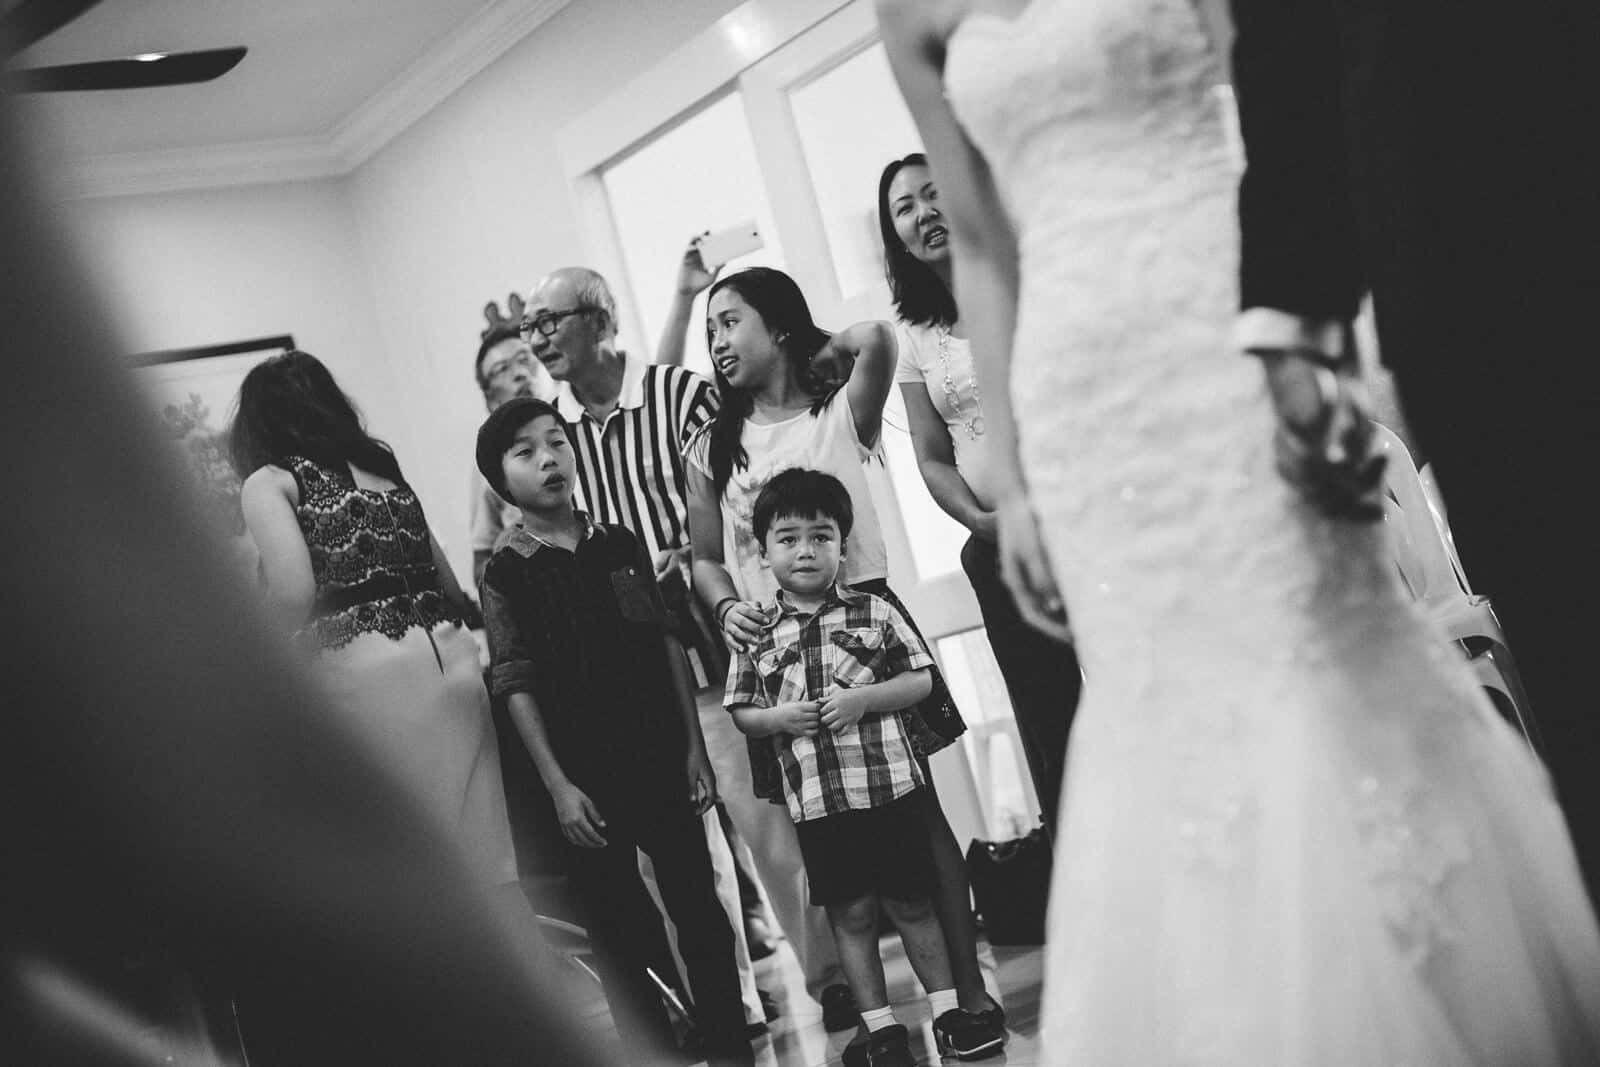 Malaysia Kuala Lumpur Wedding Day Photographer Cliff Choong of Dennis Yap Photography